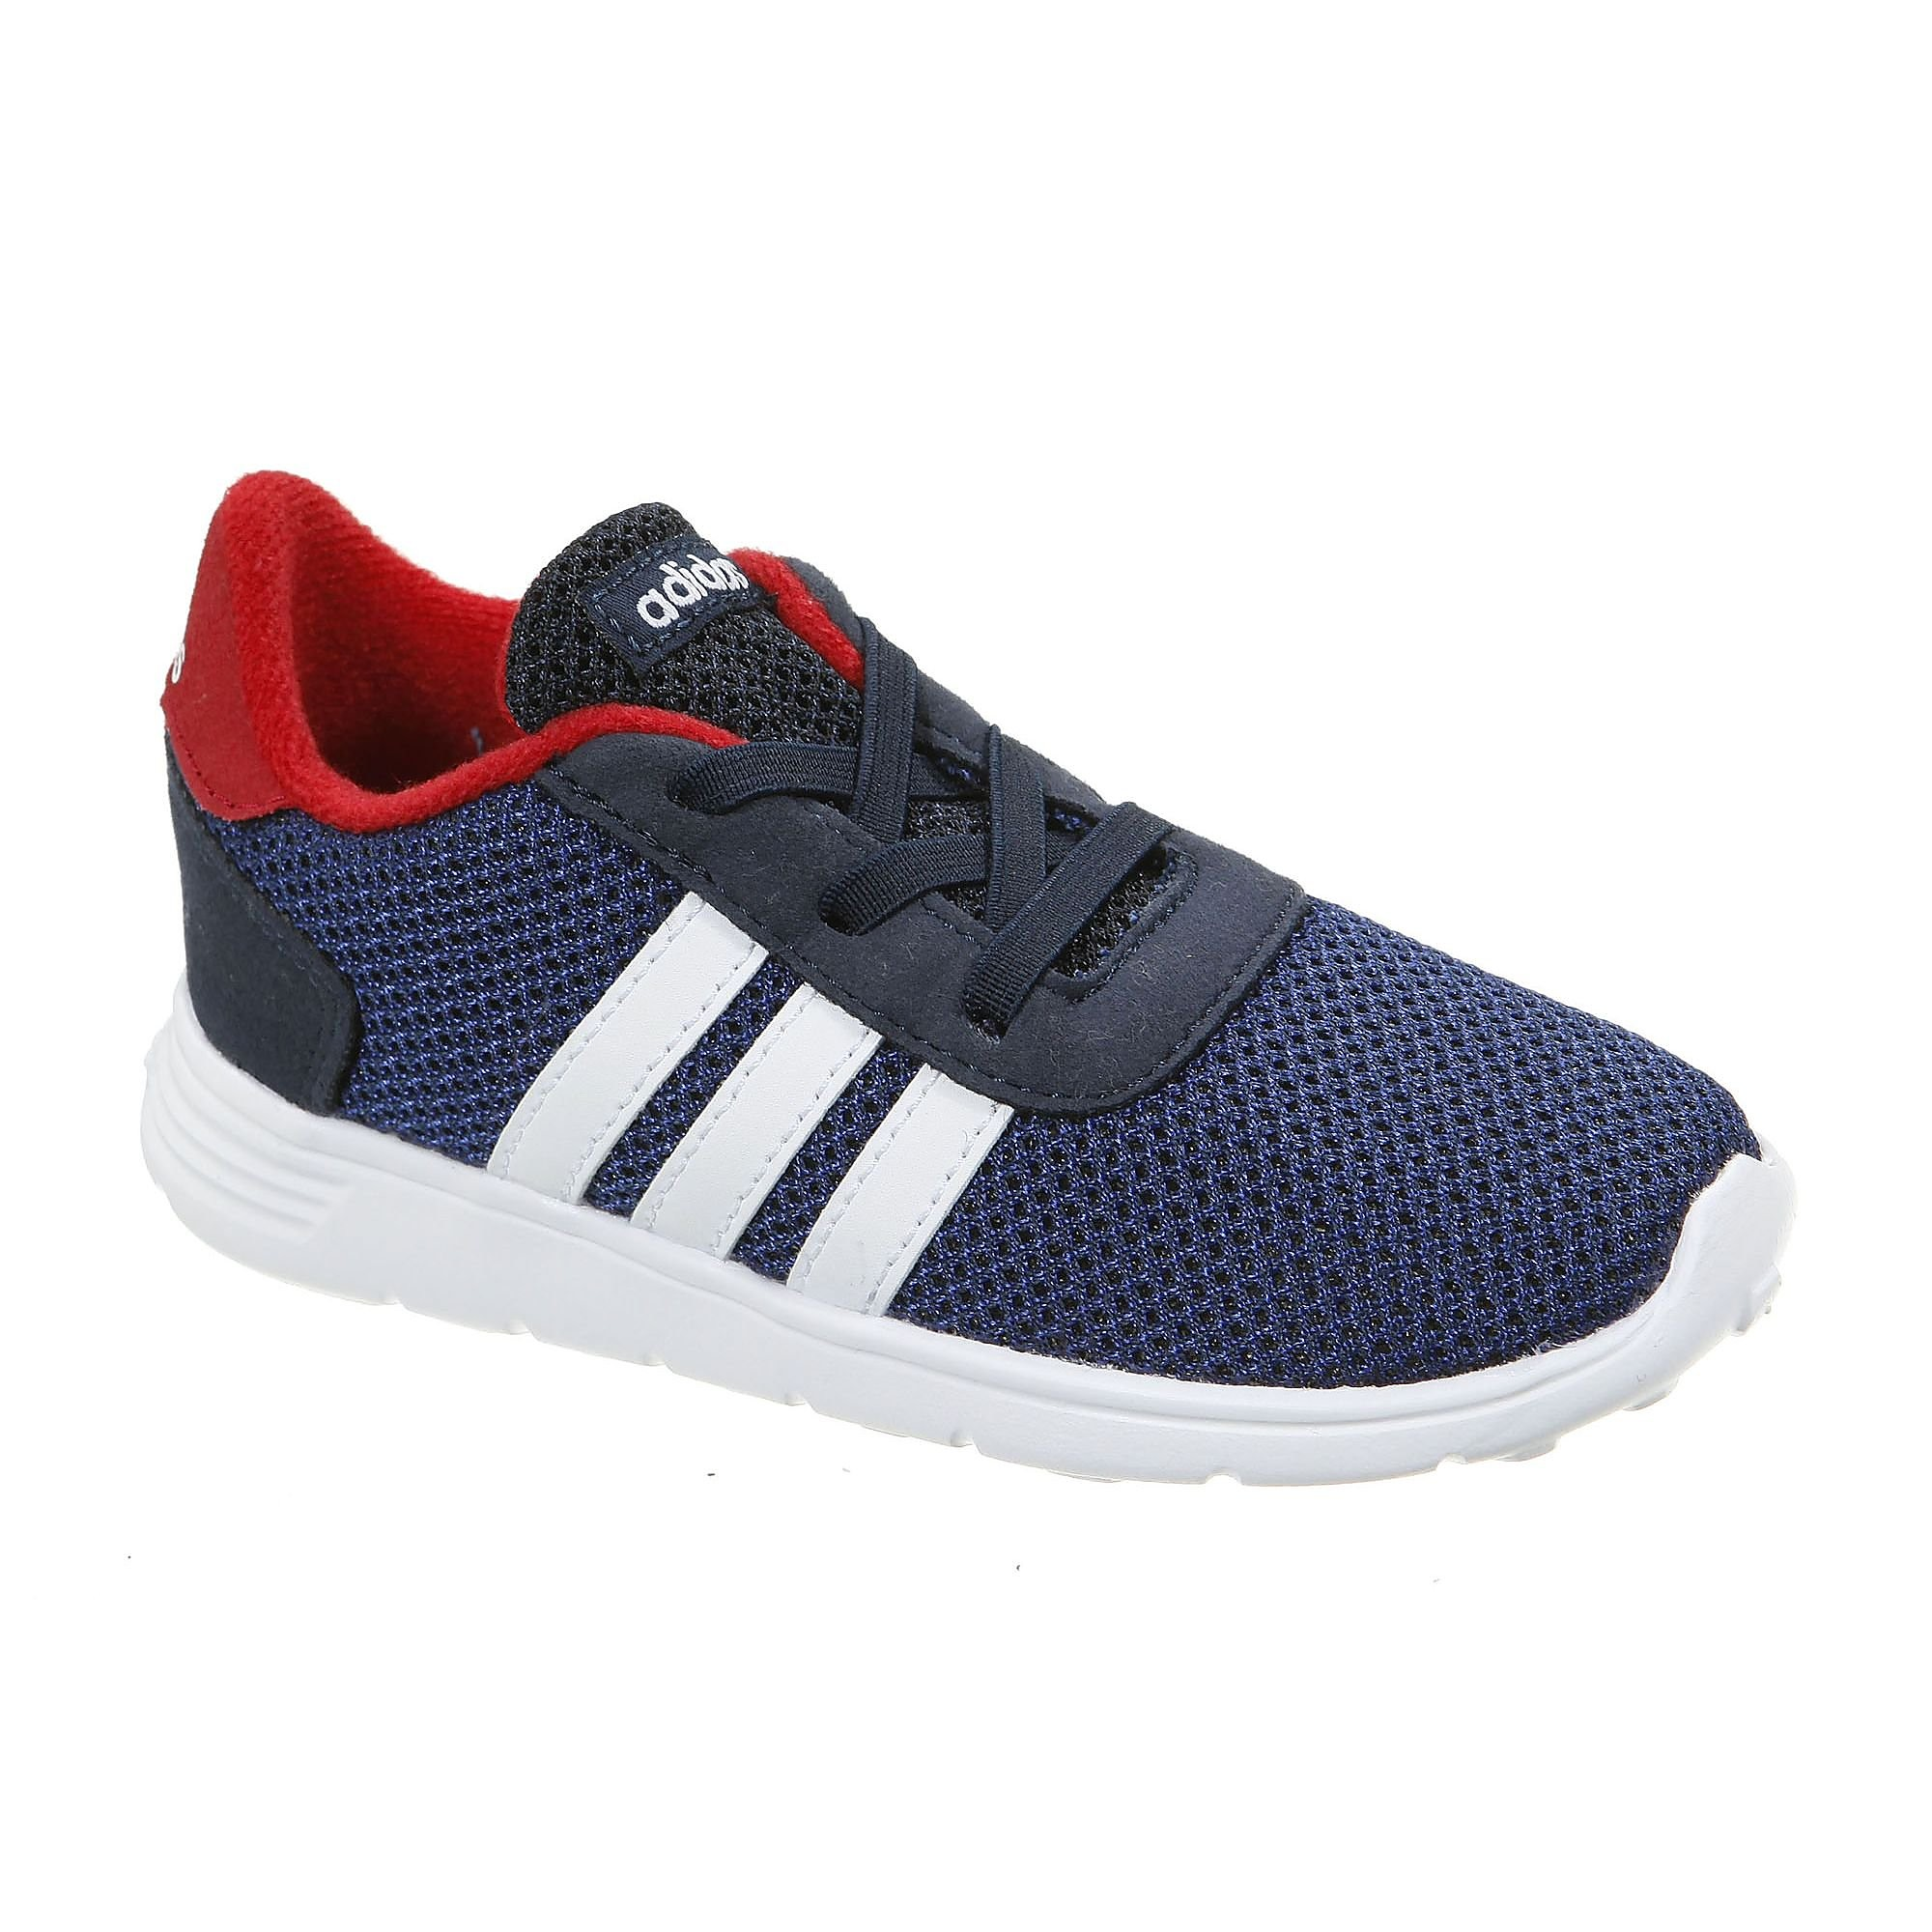 sneakers adidas Lite Racer Inf